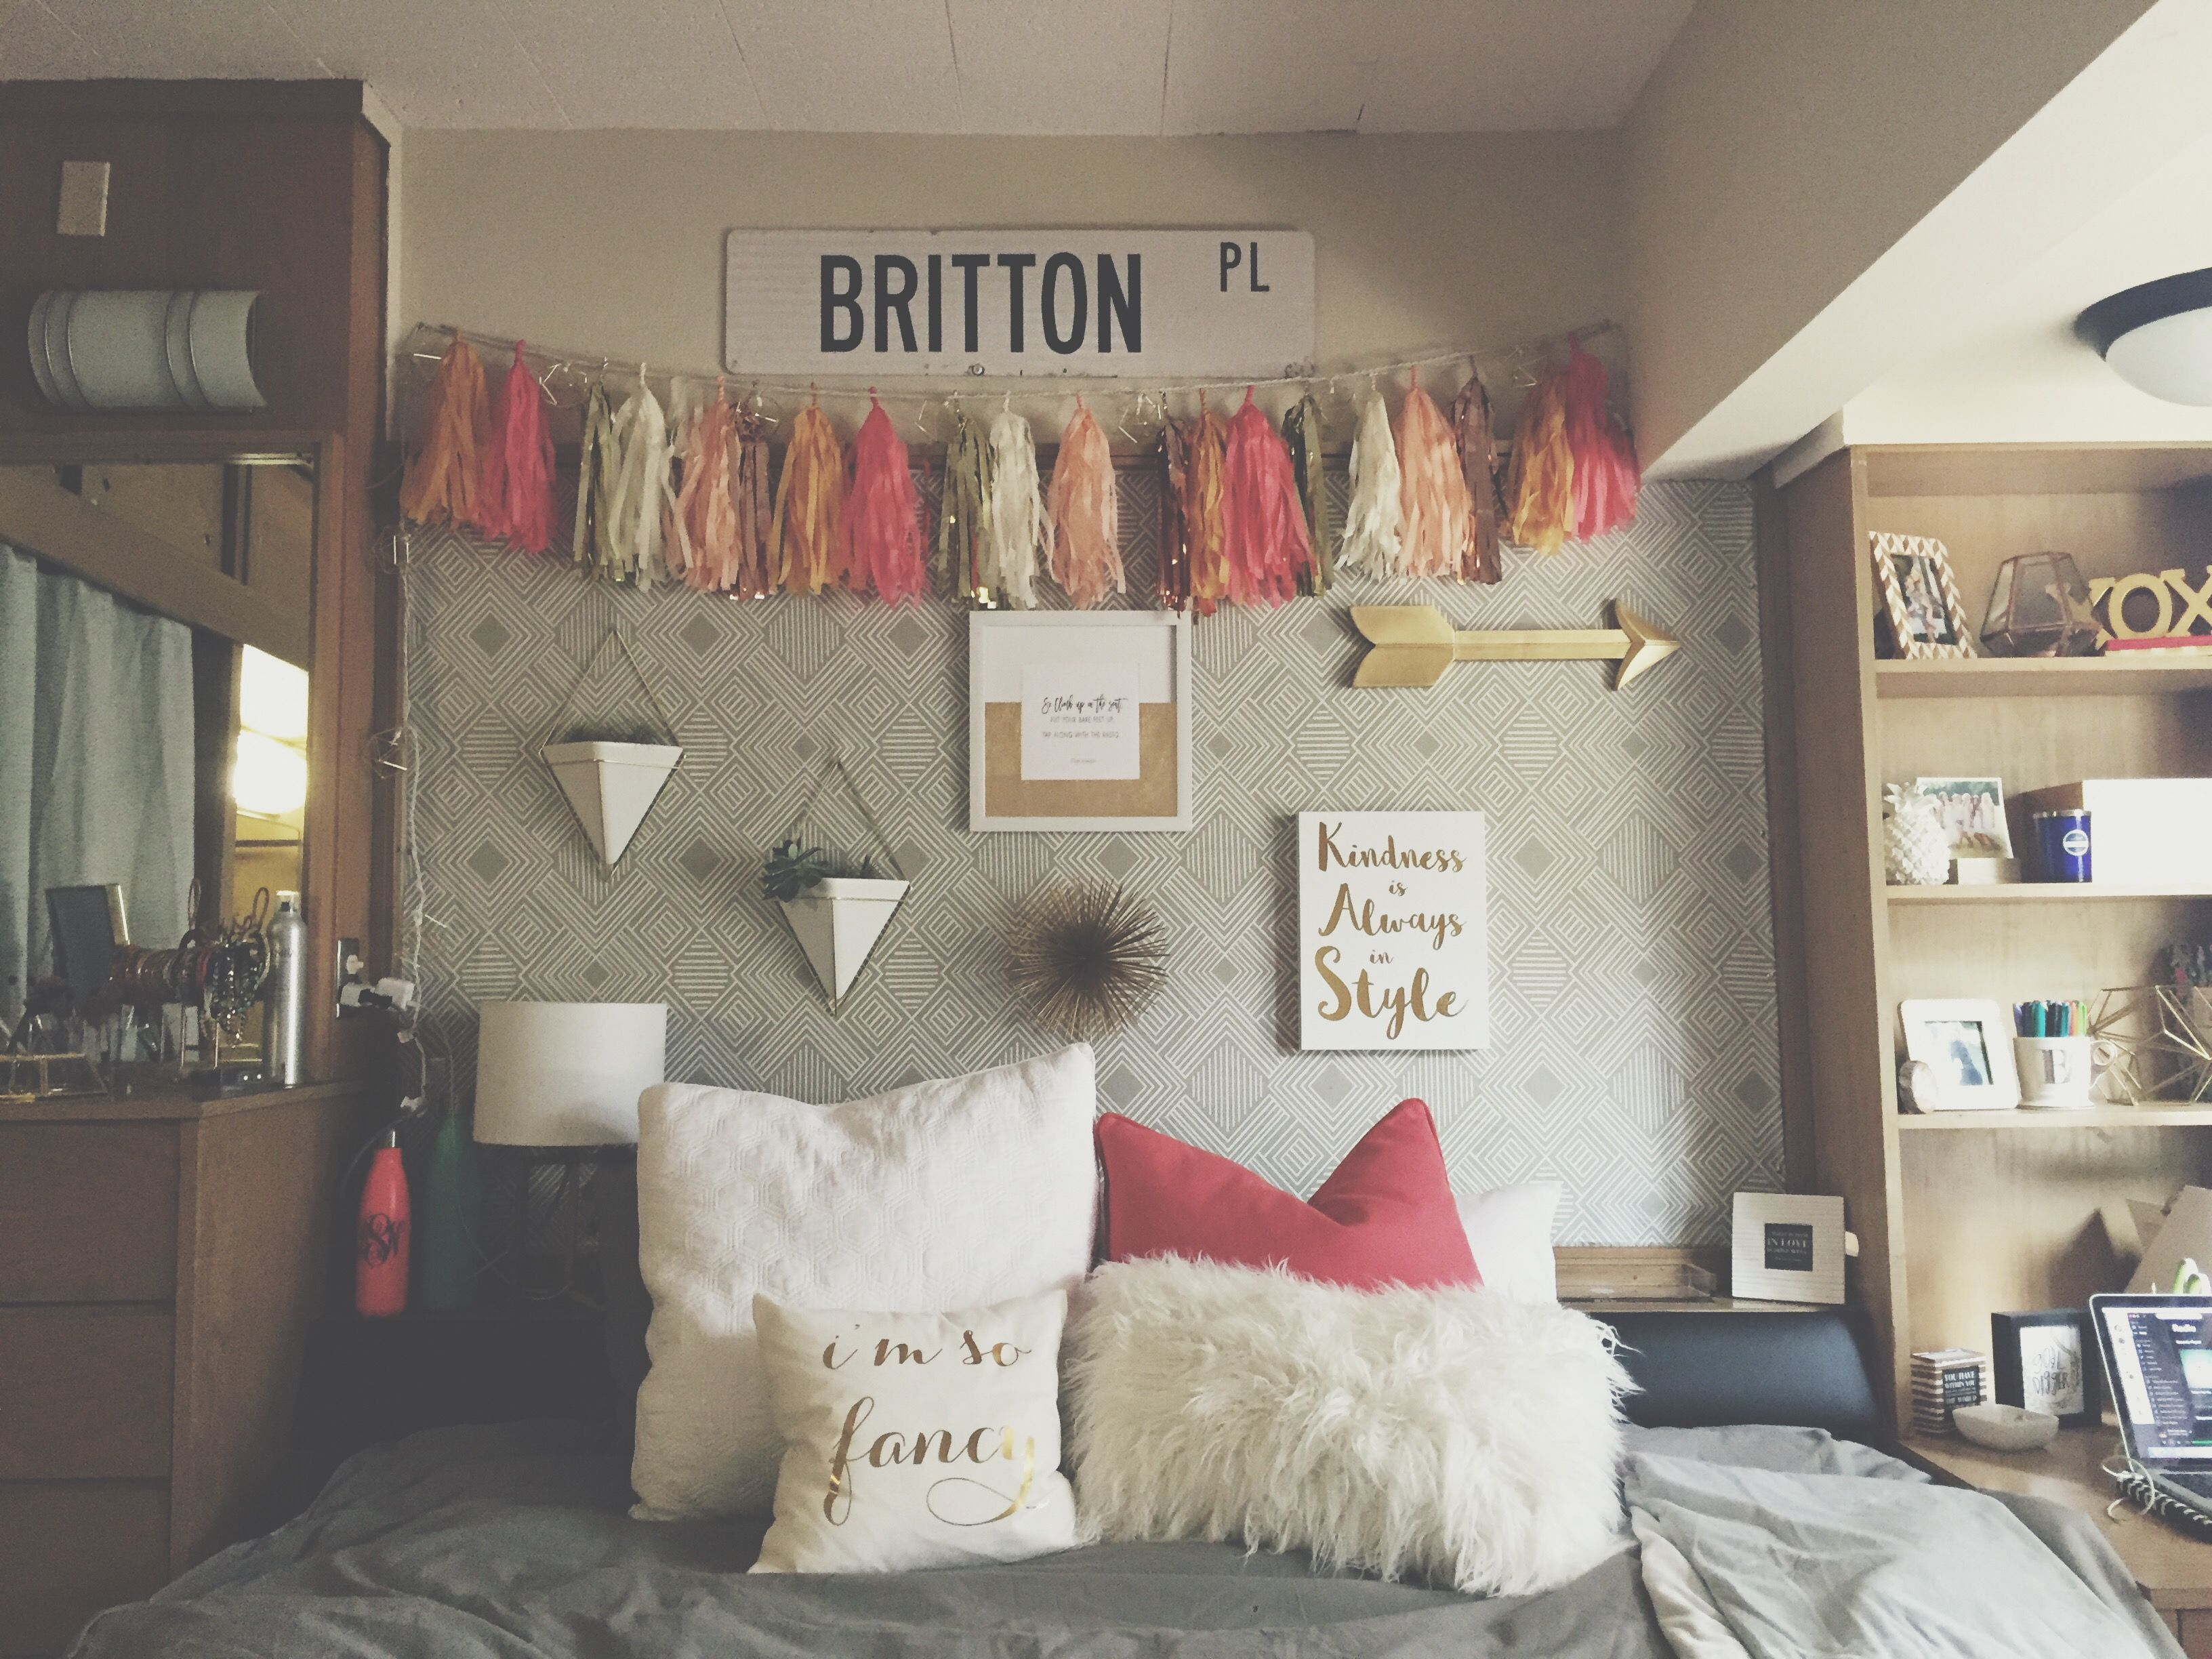 Freshman Dorm Wall Decor Texas Tech University Ttu